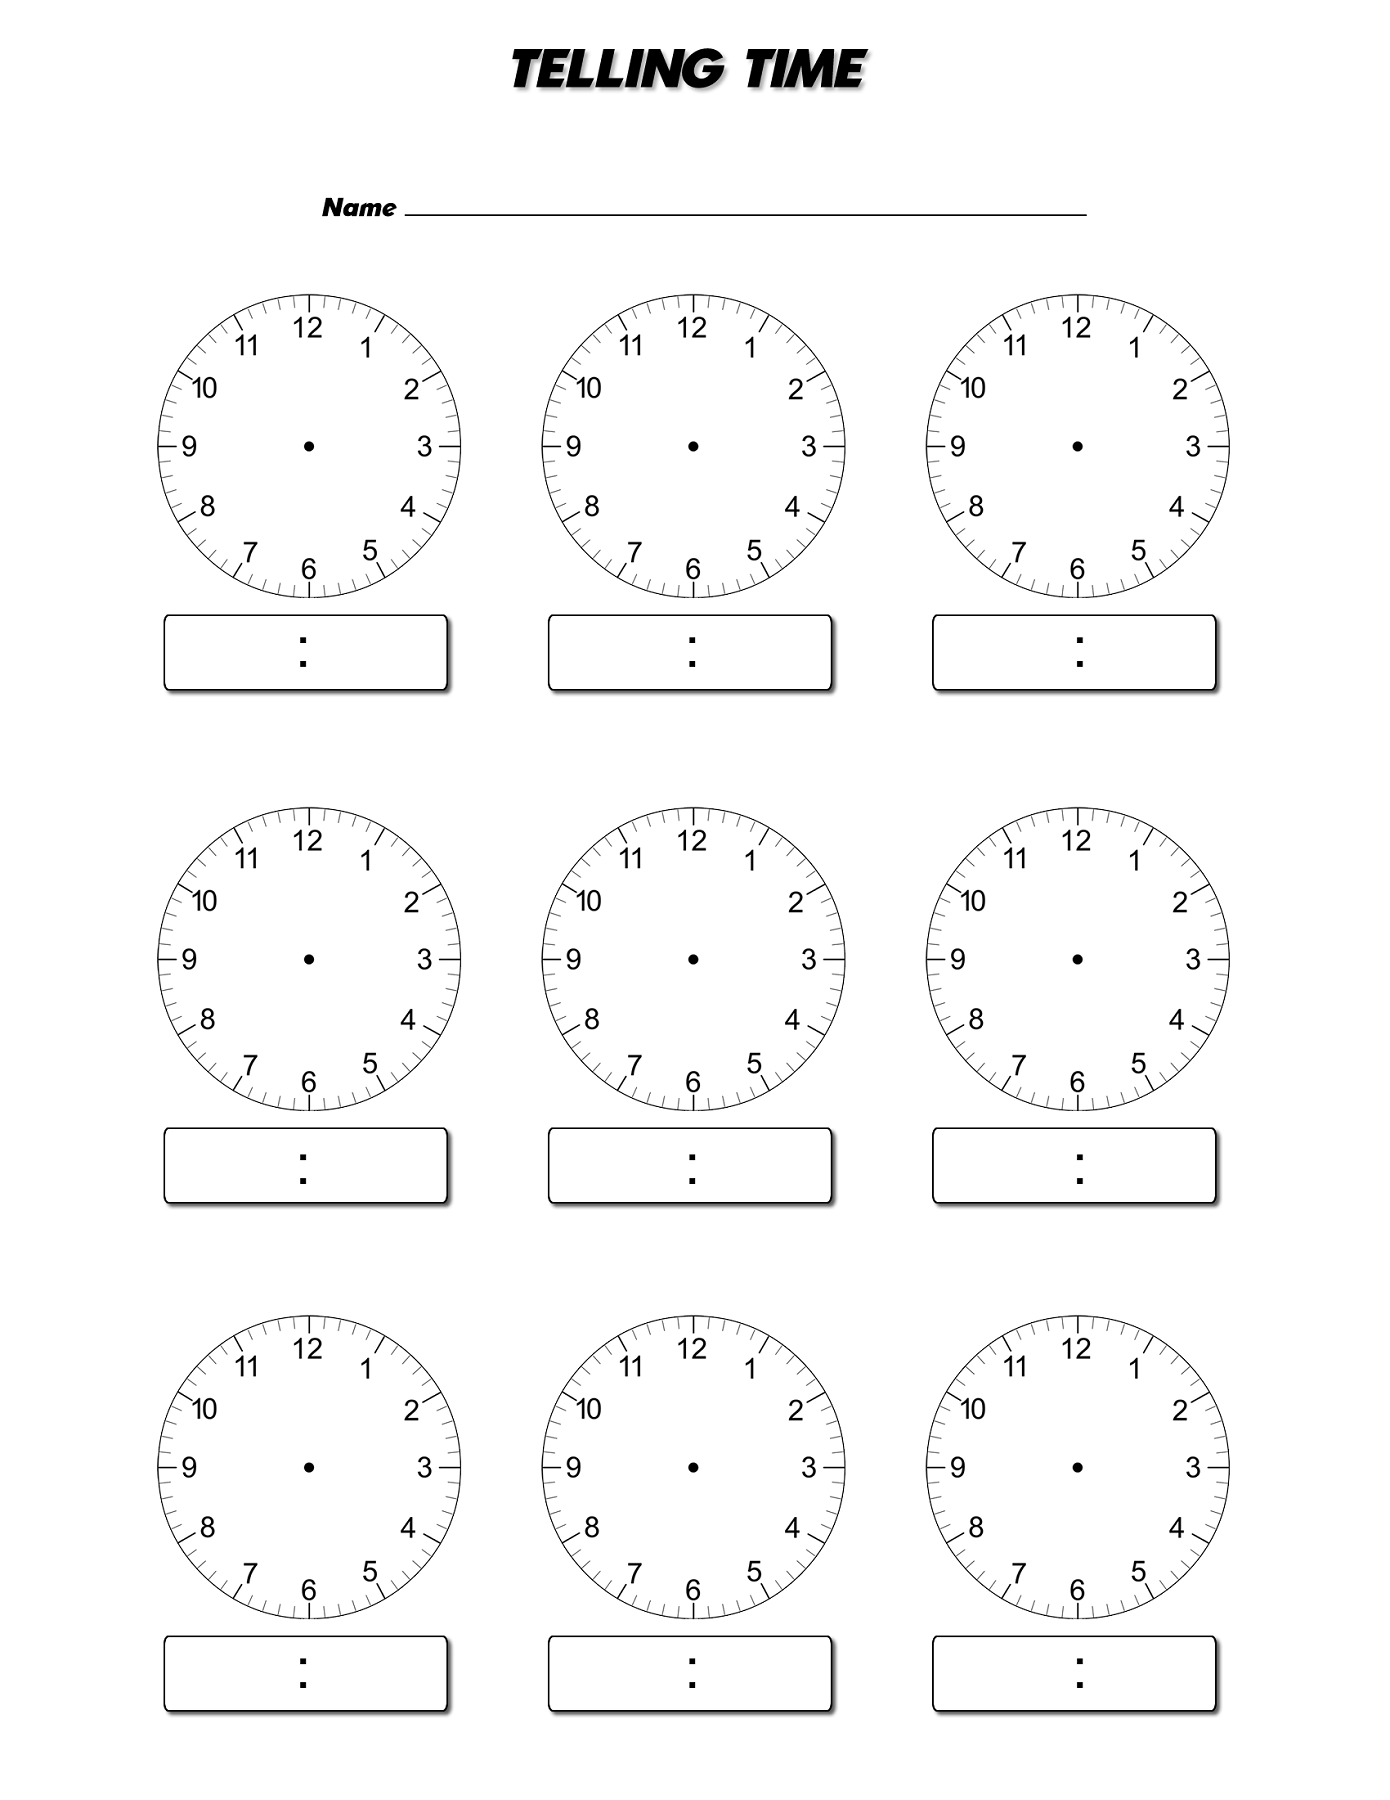 Worksheet Blank Digital Clock Faces blank clock faces templates activity shelter face template digital